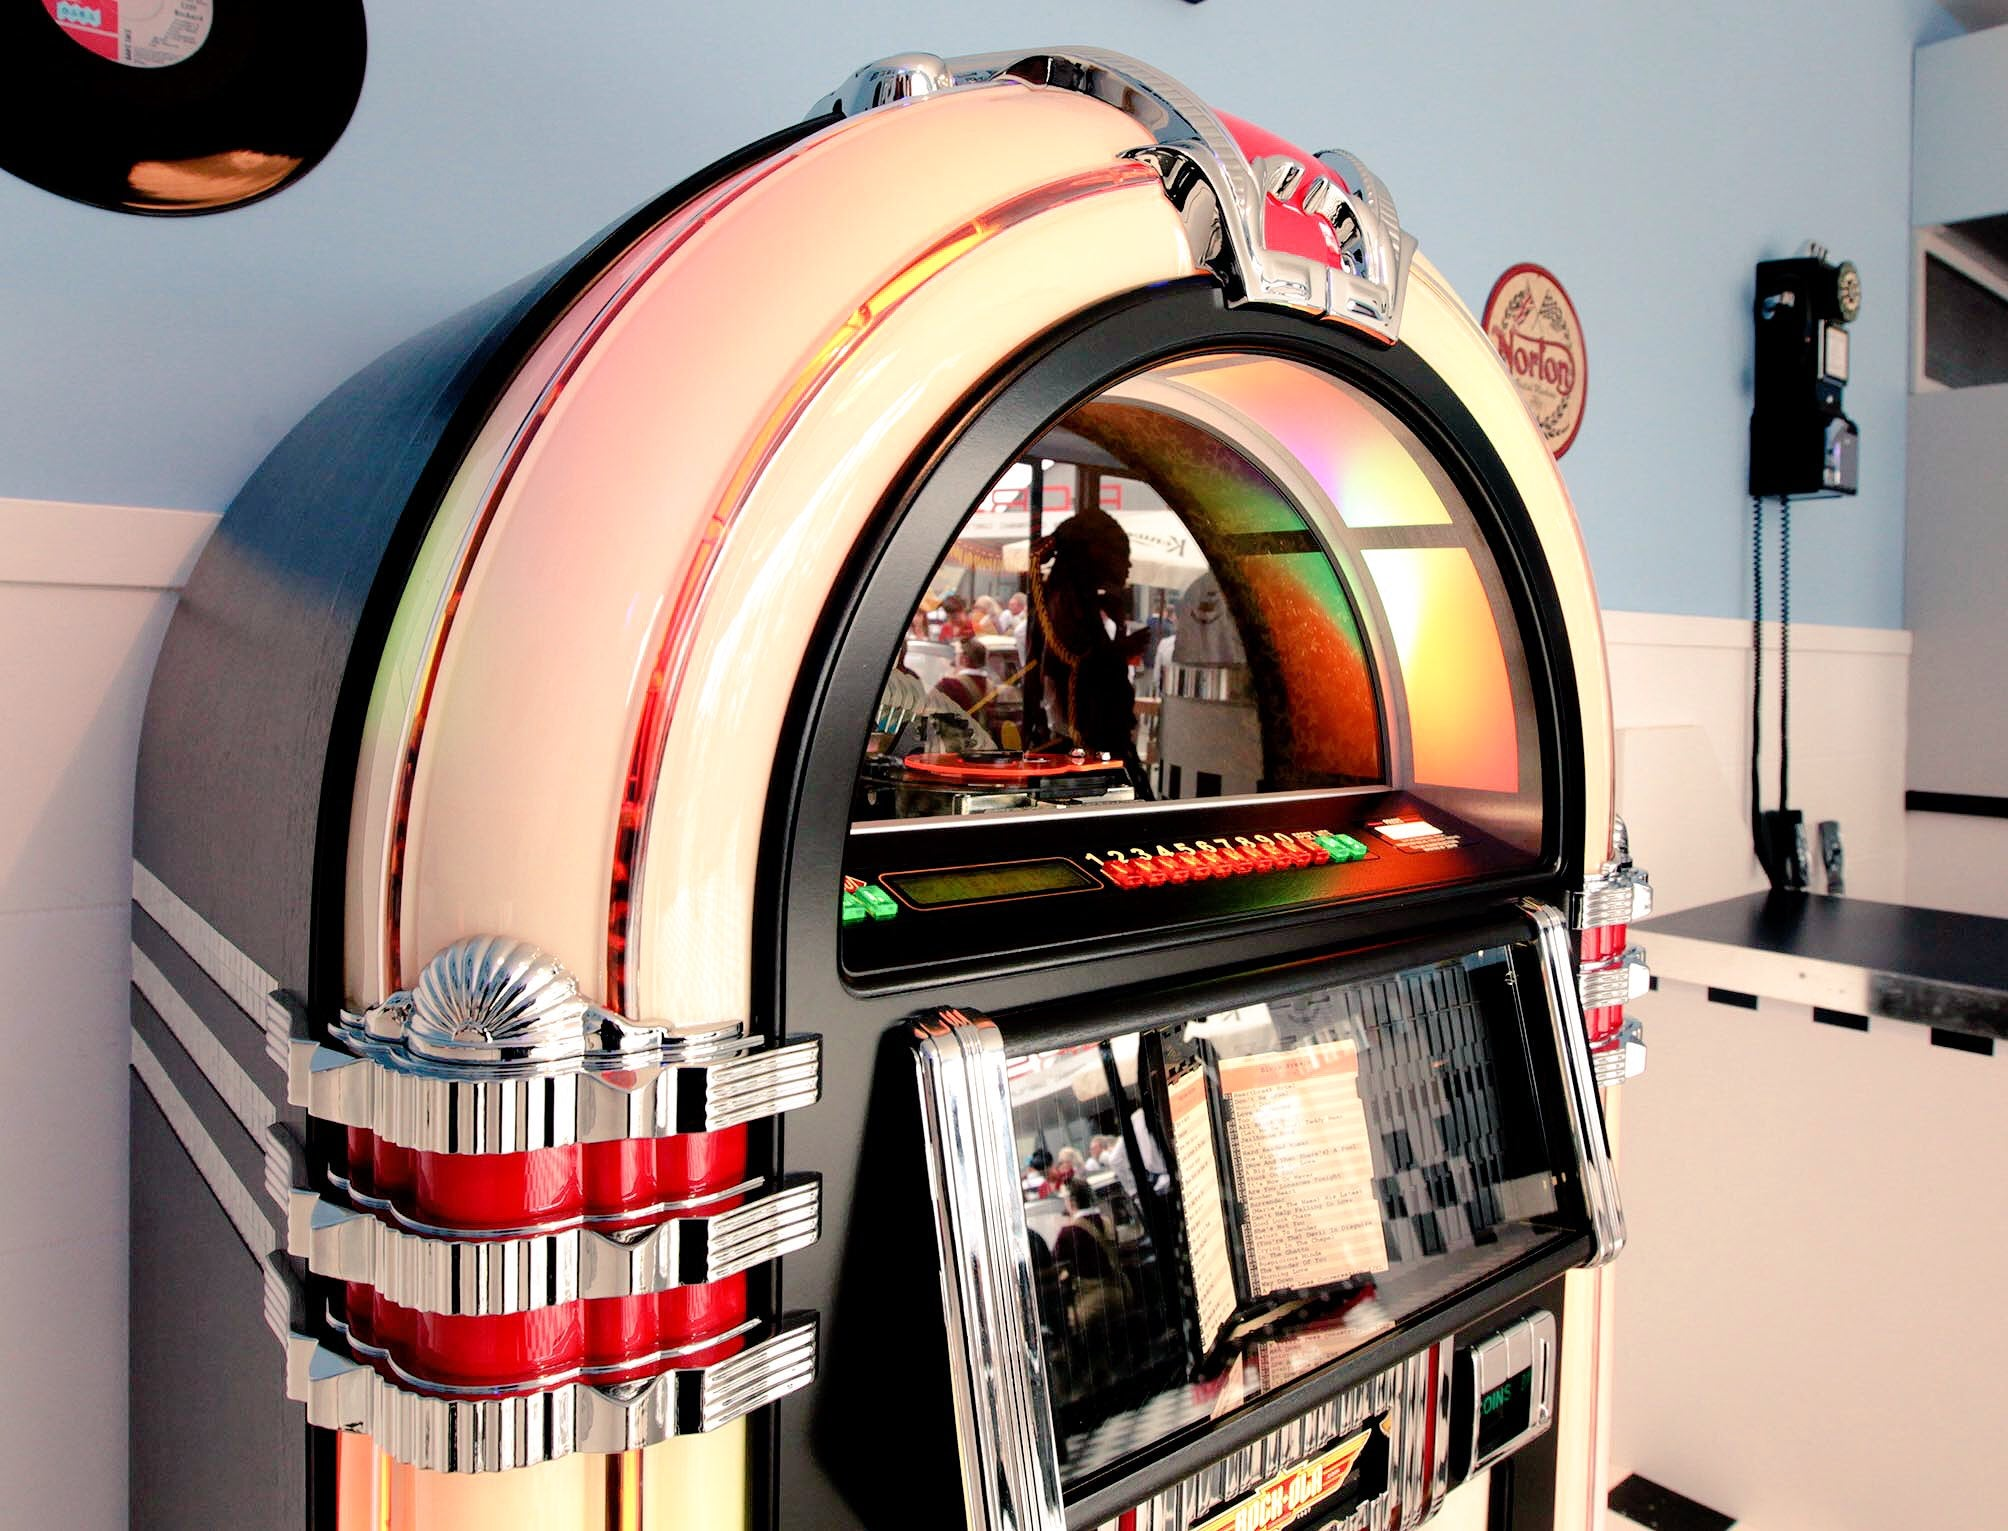 Why Rock-Ola Leads The World In Manufacturing Jukeboxes